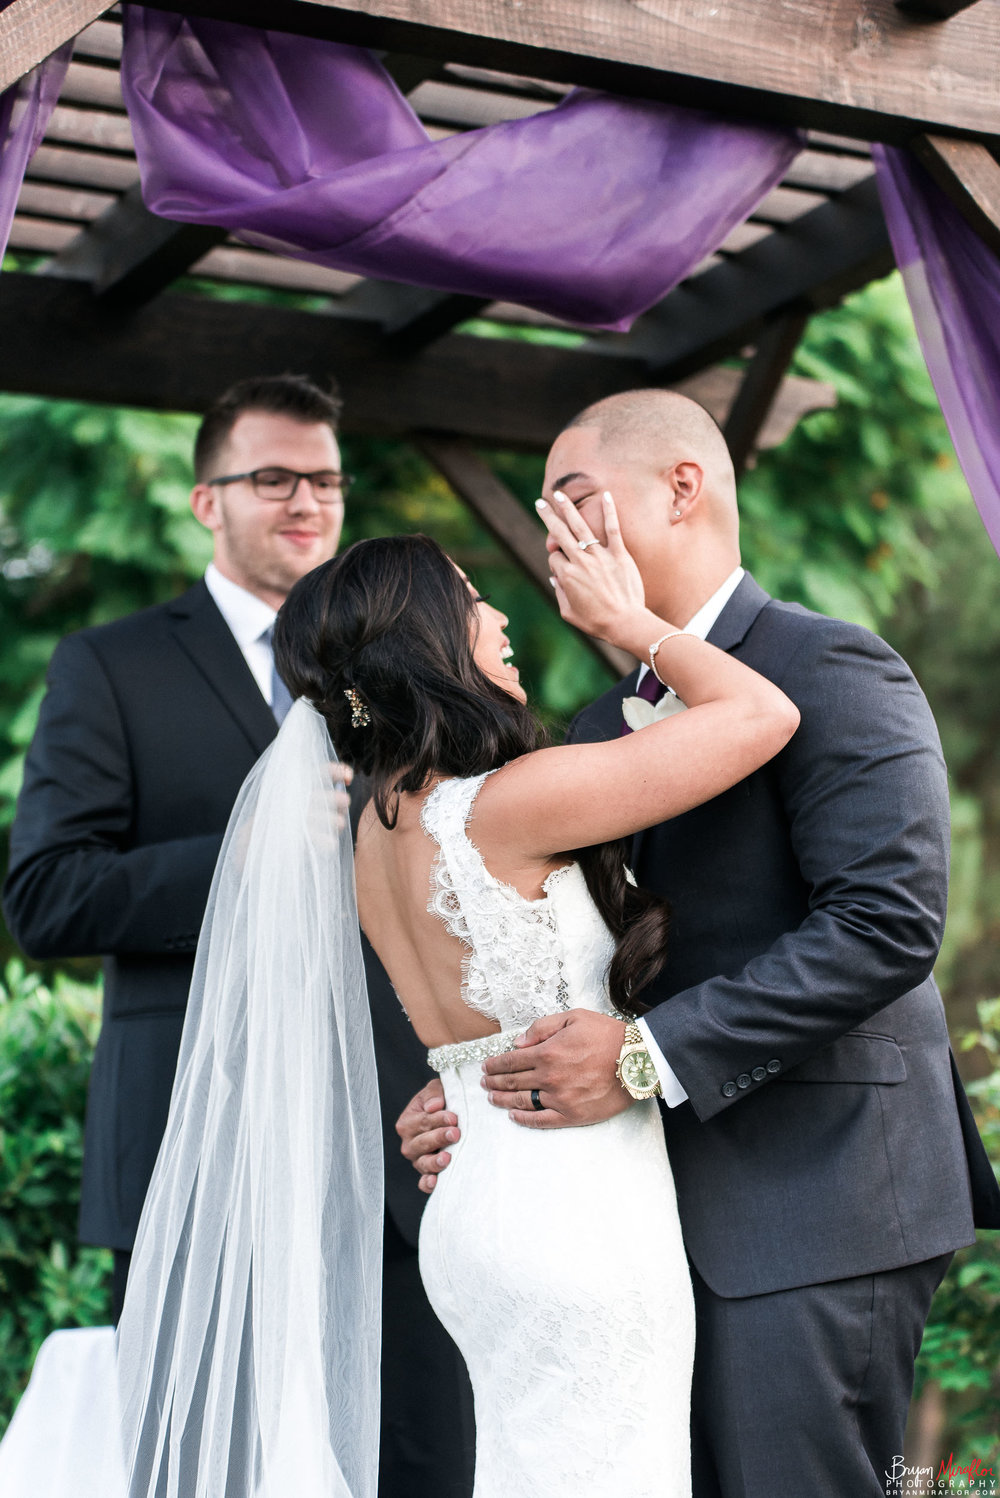 Bryan-Miraflor-Photography-Trisha-Dexter-Married-20170923-054.jpg